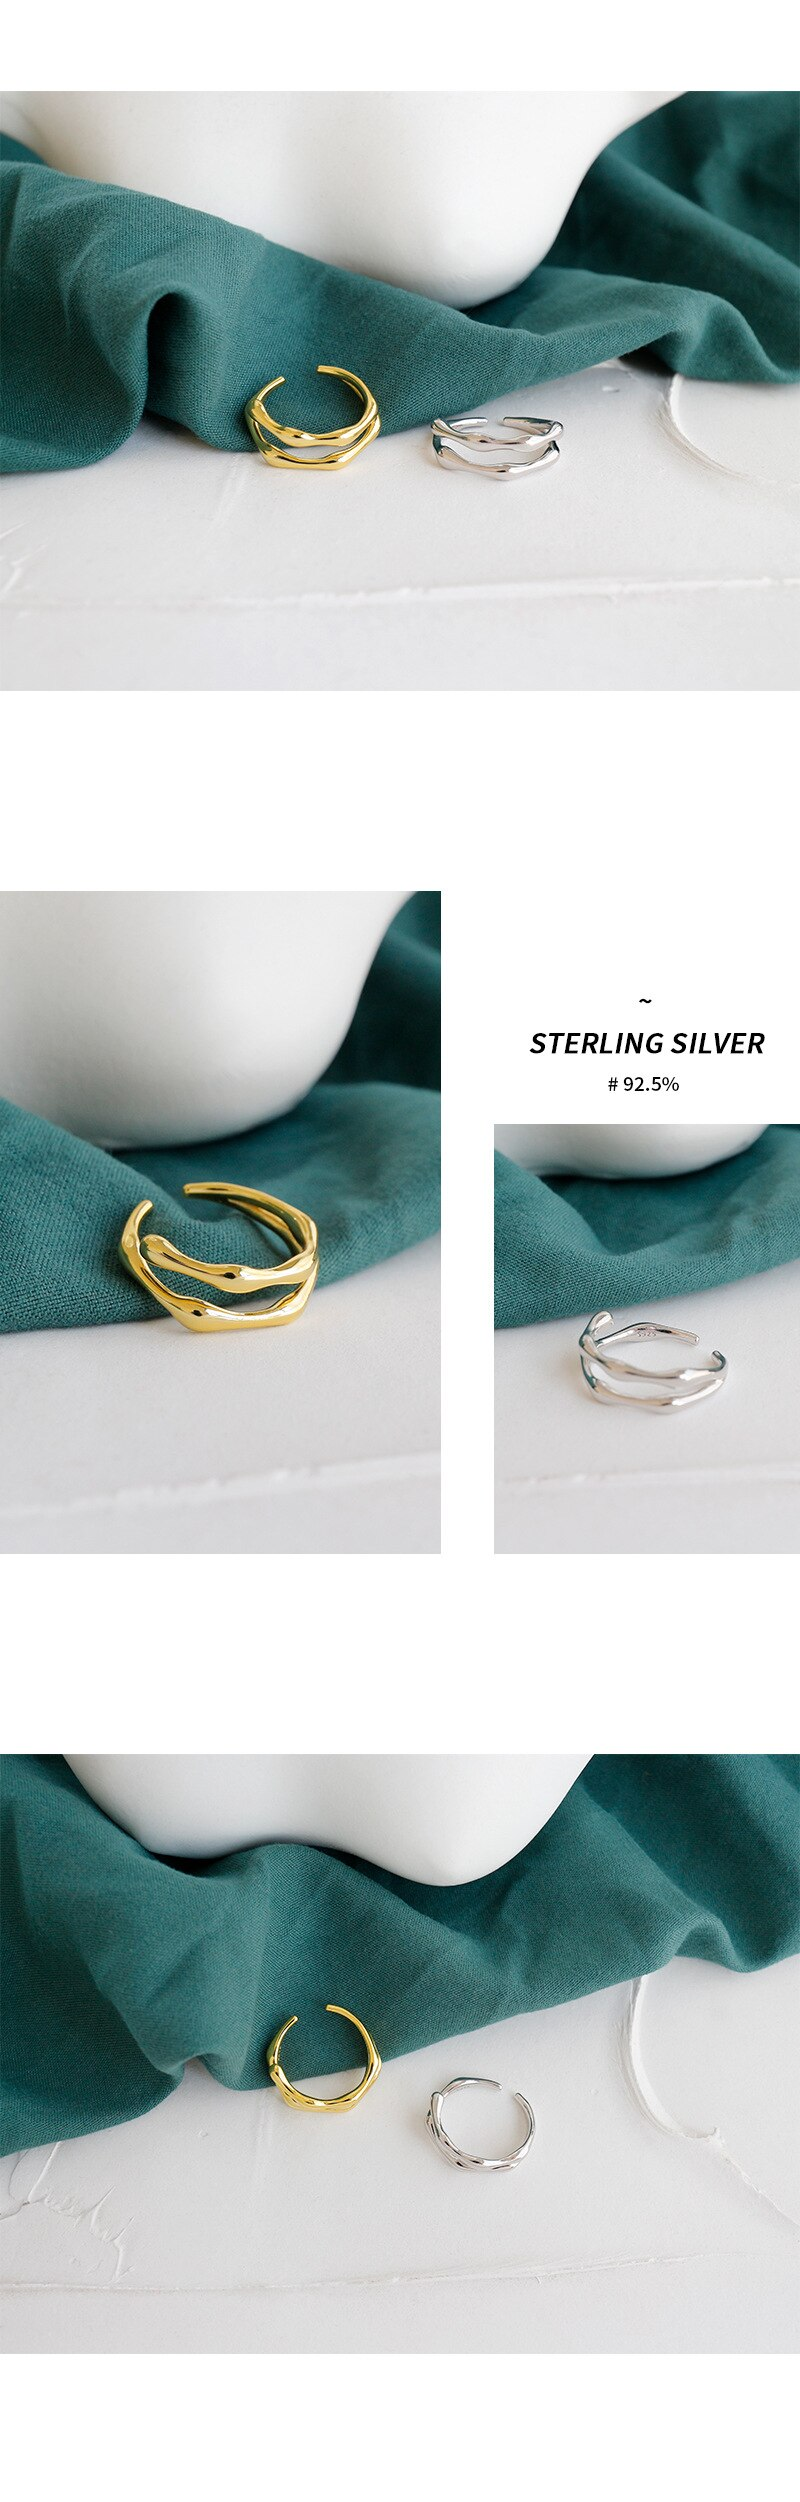 Kinel 100% 925 Sterling Silver Irregular Finger Rings for Women Adjustable Double layer Ring Wedding 18K Gold Jewelry